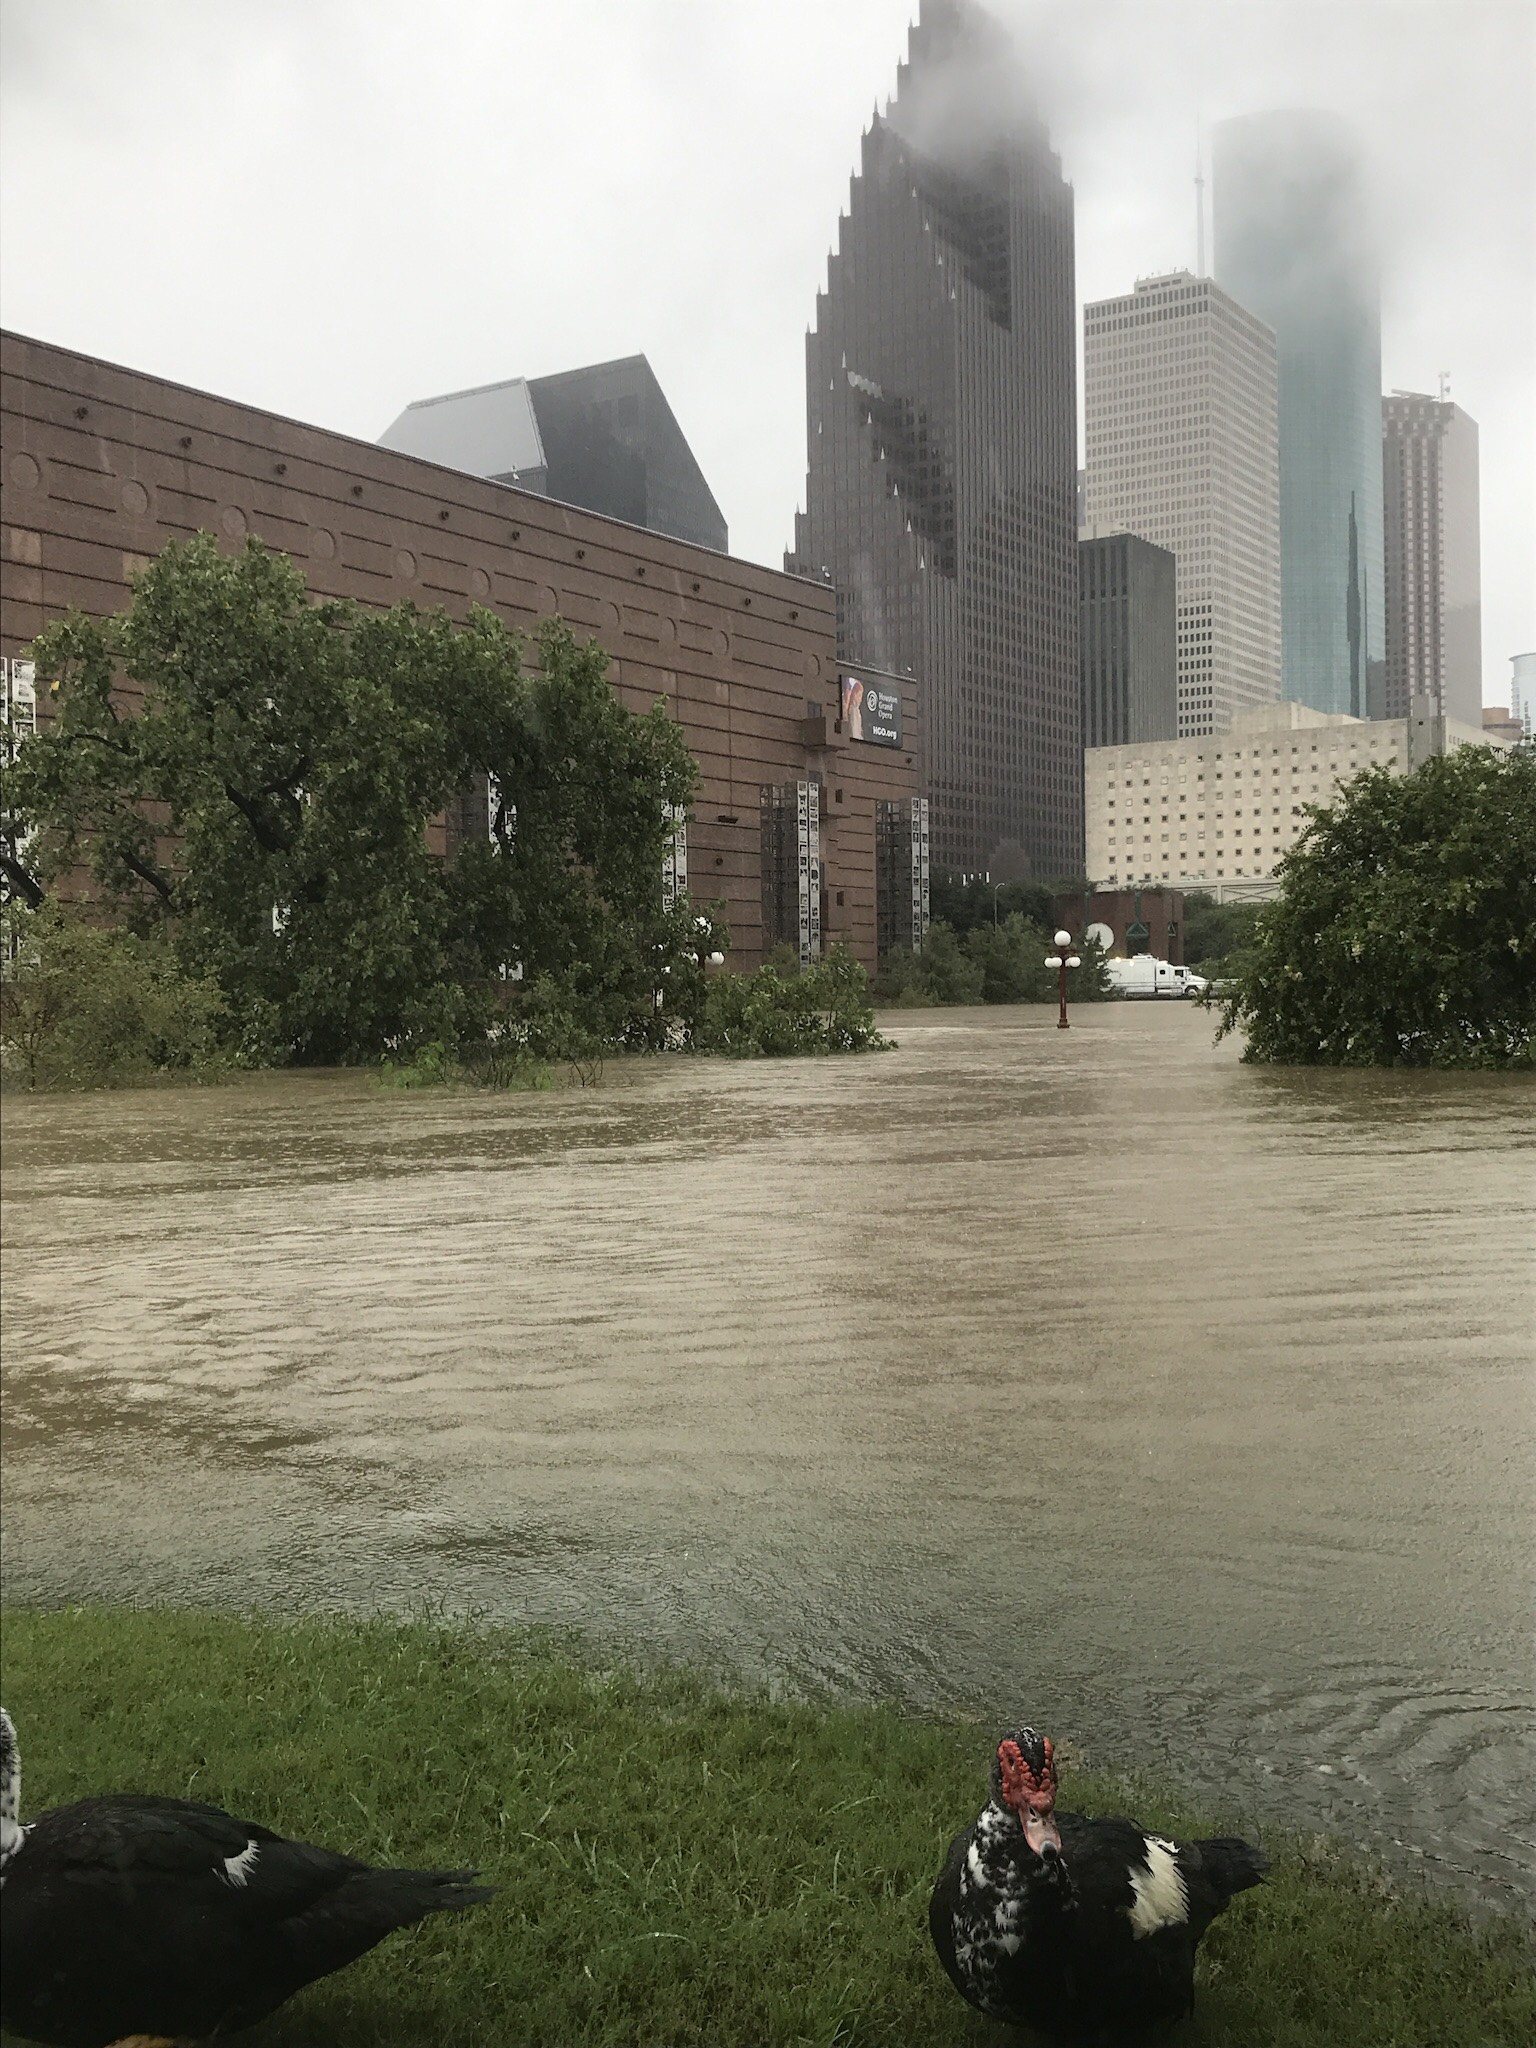 "<div class=""meta image-caption""><div class=""origin-logo origin-image ktrk""><span>KTRK</span></div><span class=""caption-text"">Flooding outside the Wortham Center in downtown Houston.</span></div>"